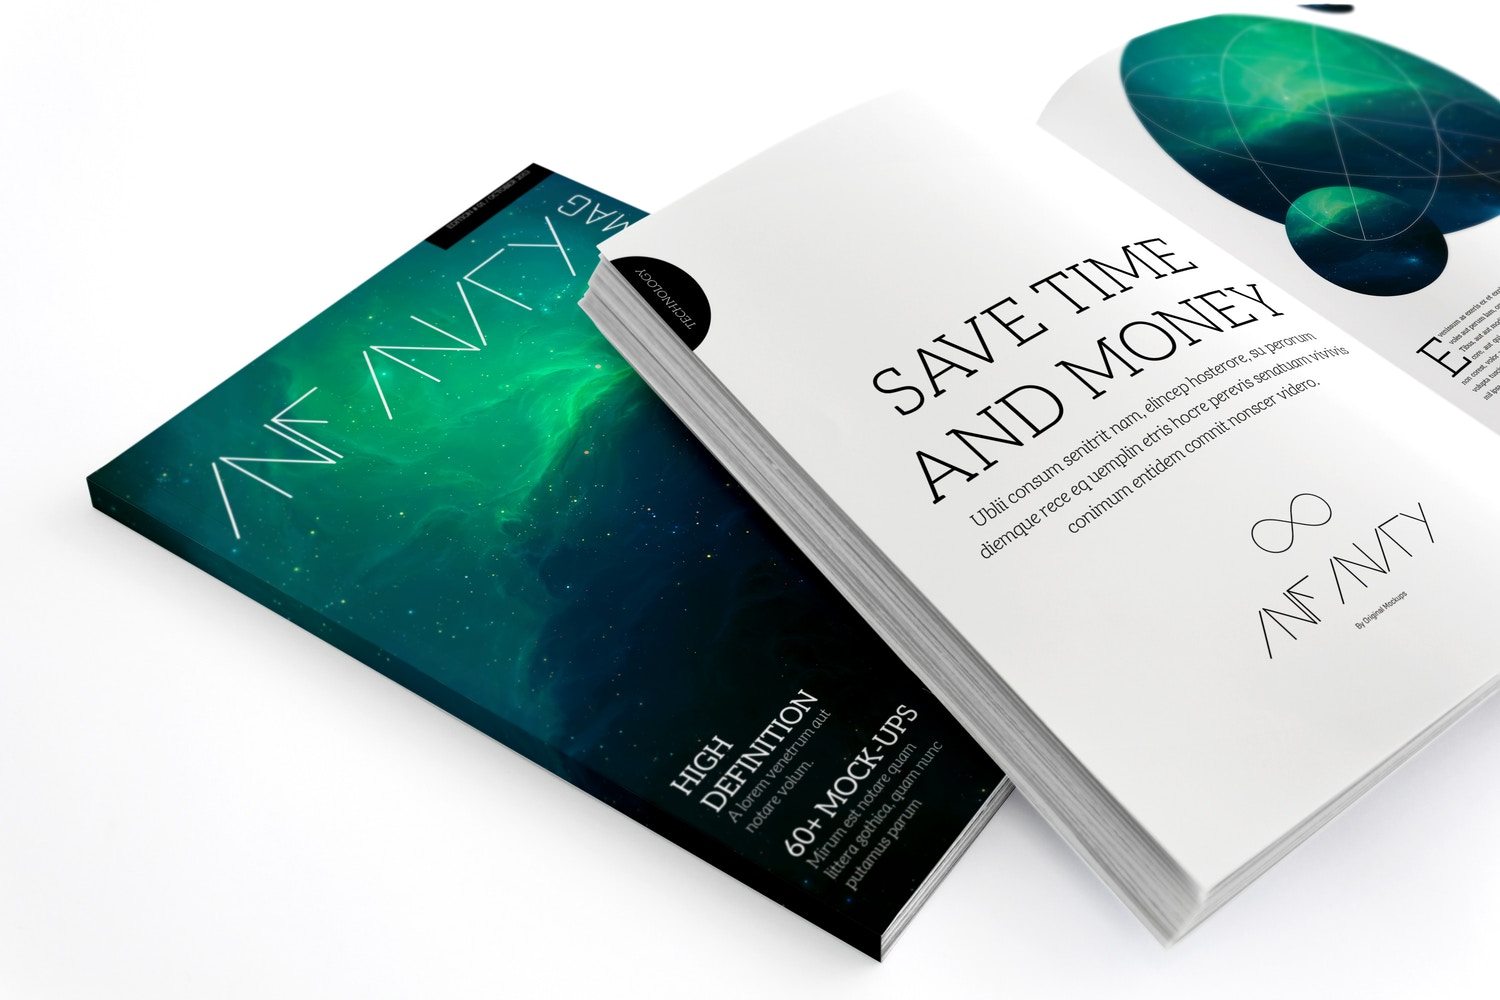 A4 Magazine Mockup for Spread Page & Cover 03 by Original Mockups on Original Mockups